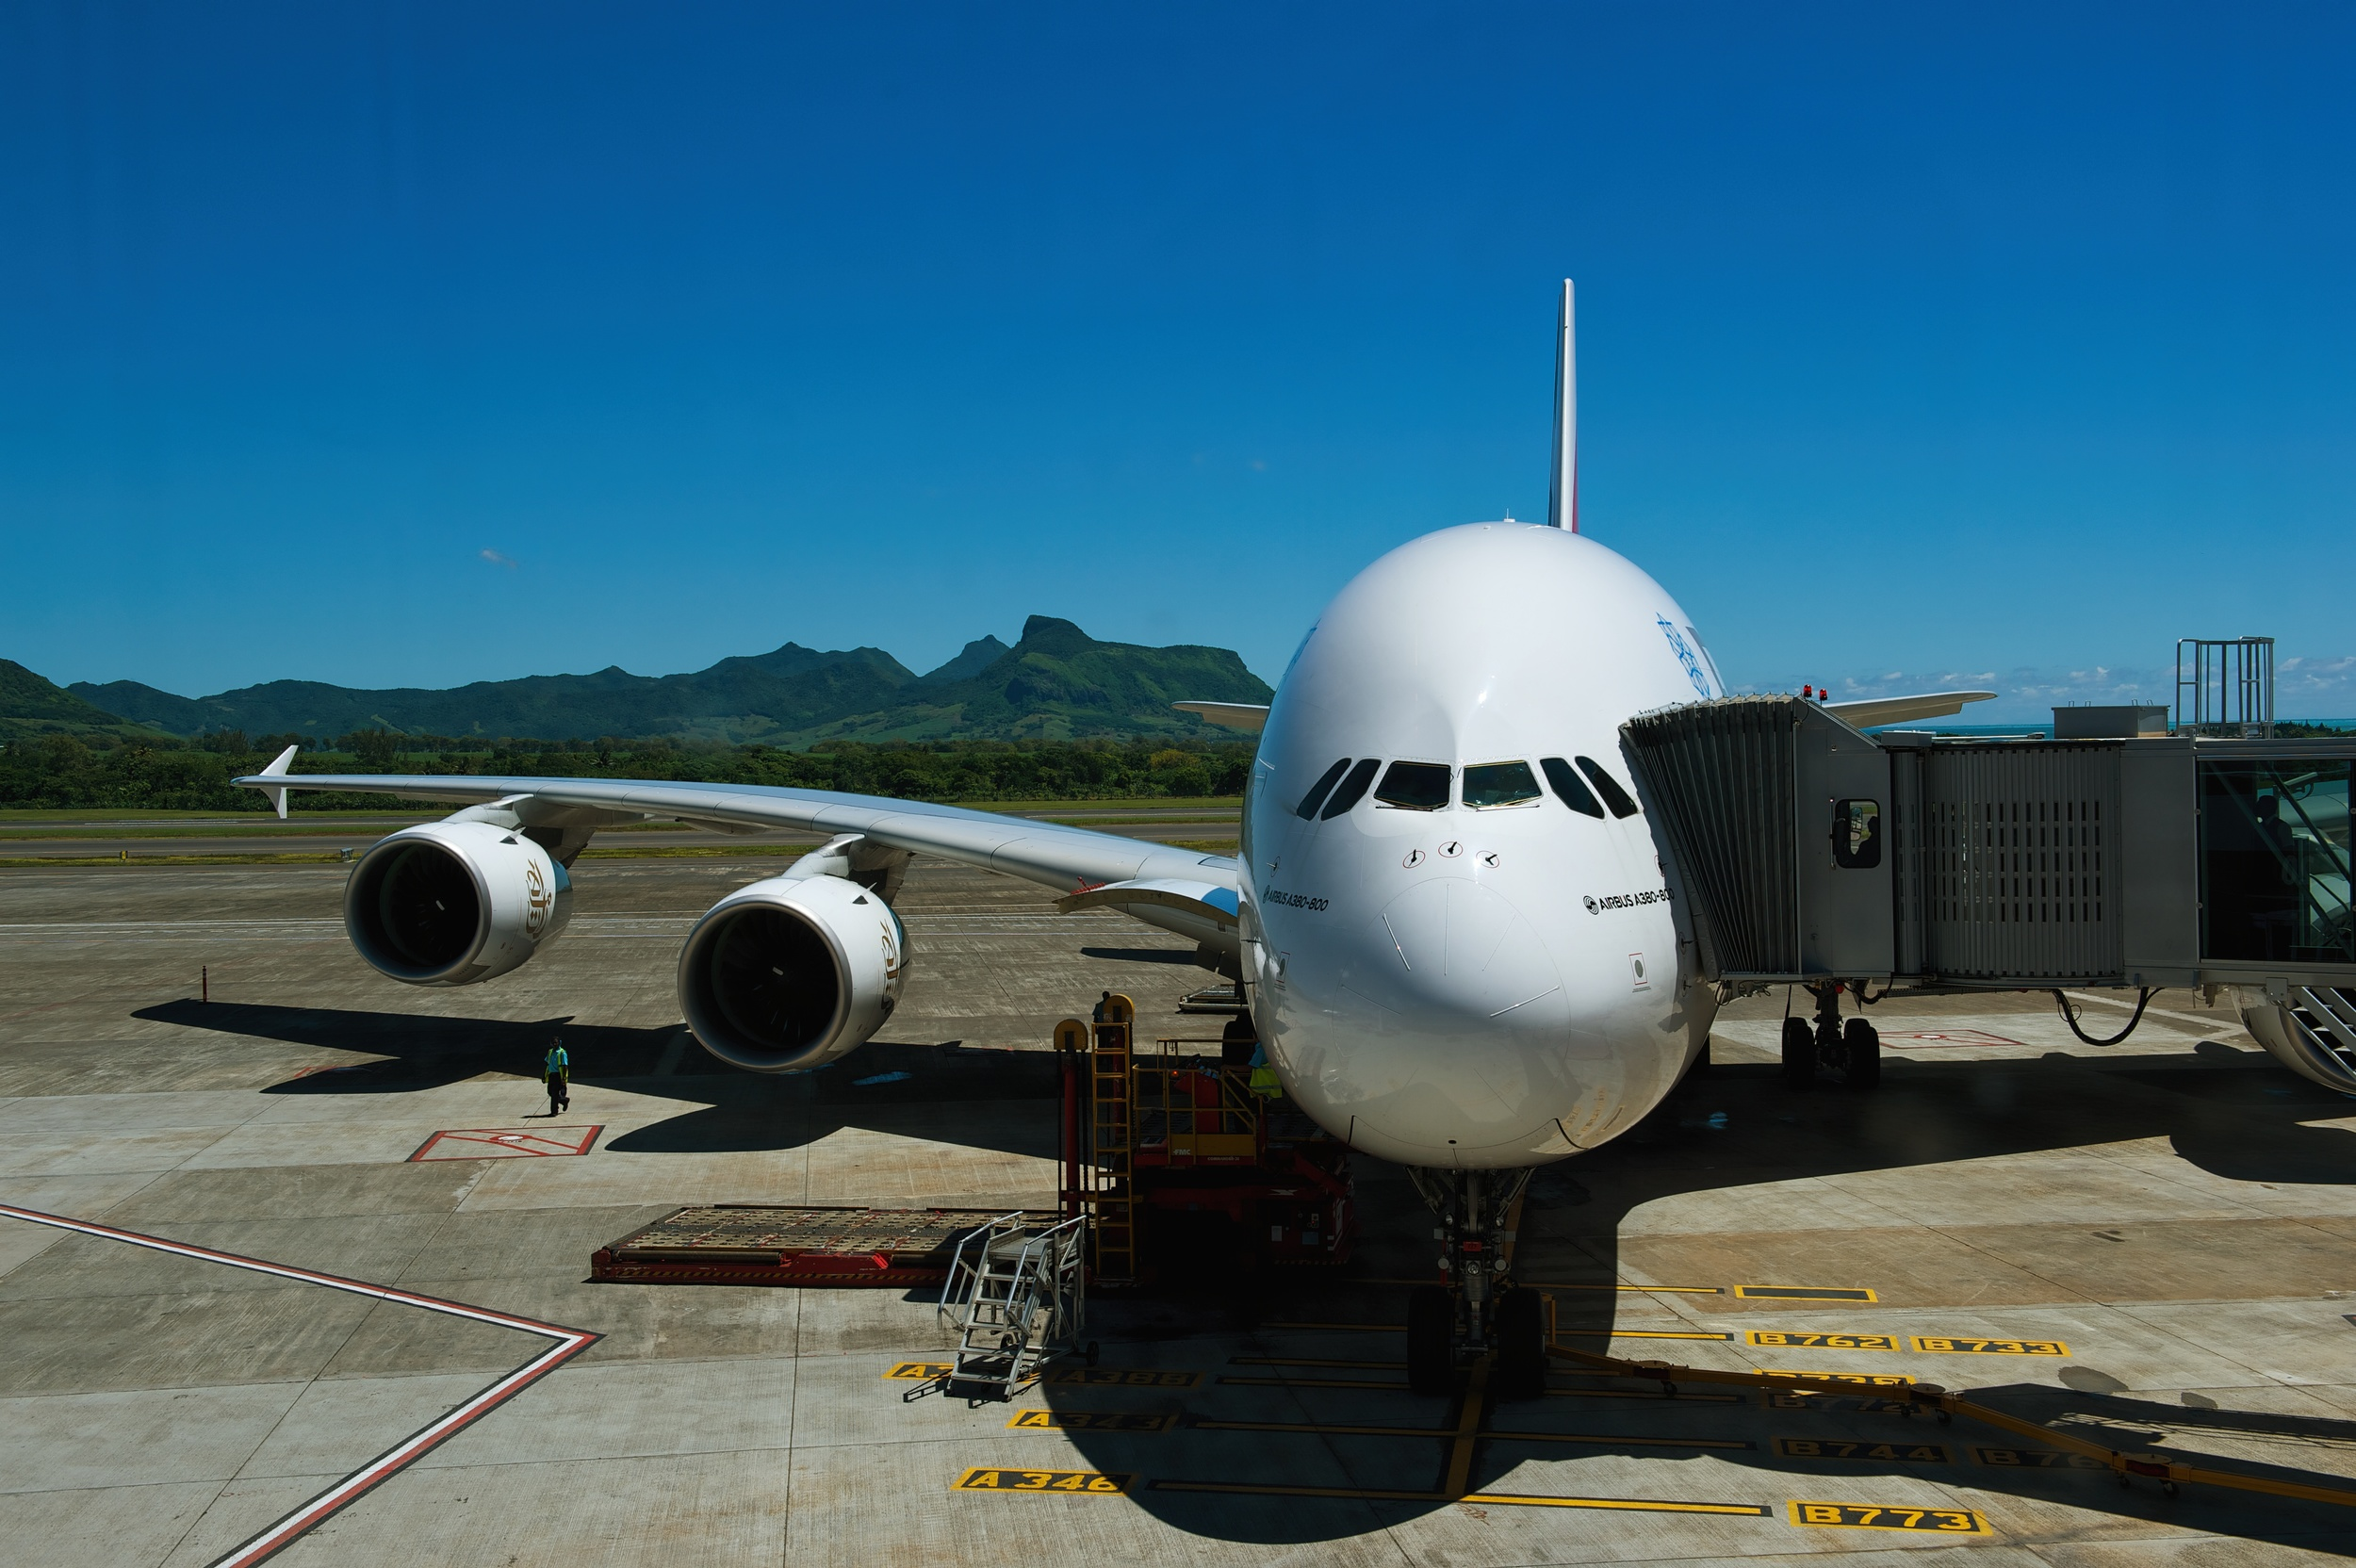 Airbus A380 at the gate in Mauritius, Plaisance Airport.